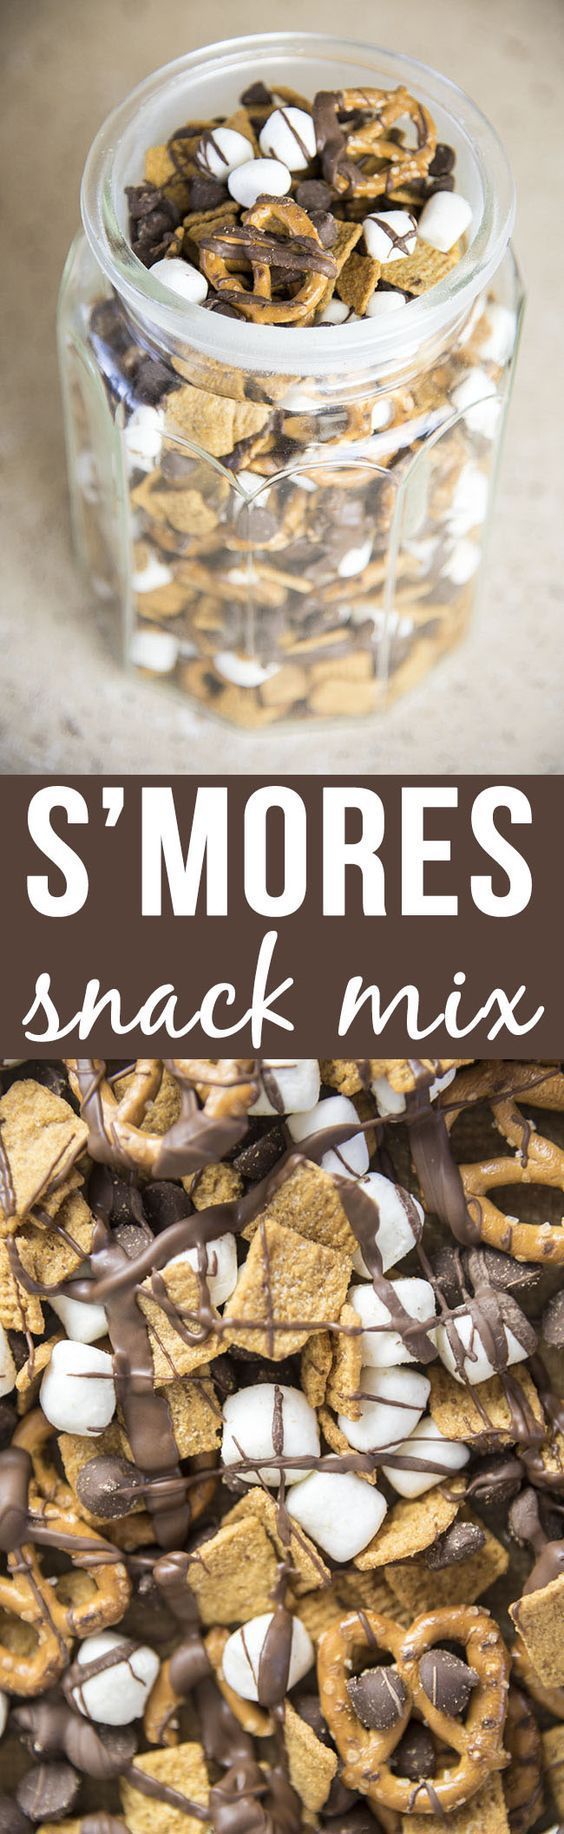 S'mores Snack Mix | 15 Quick & Easy Snacks to Munch On While Studying | http://www.hercampus.com/health/food/15-quick-easy-snacks-munch-while-studying